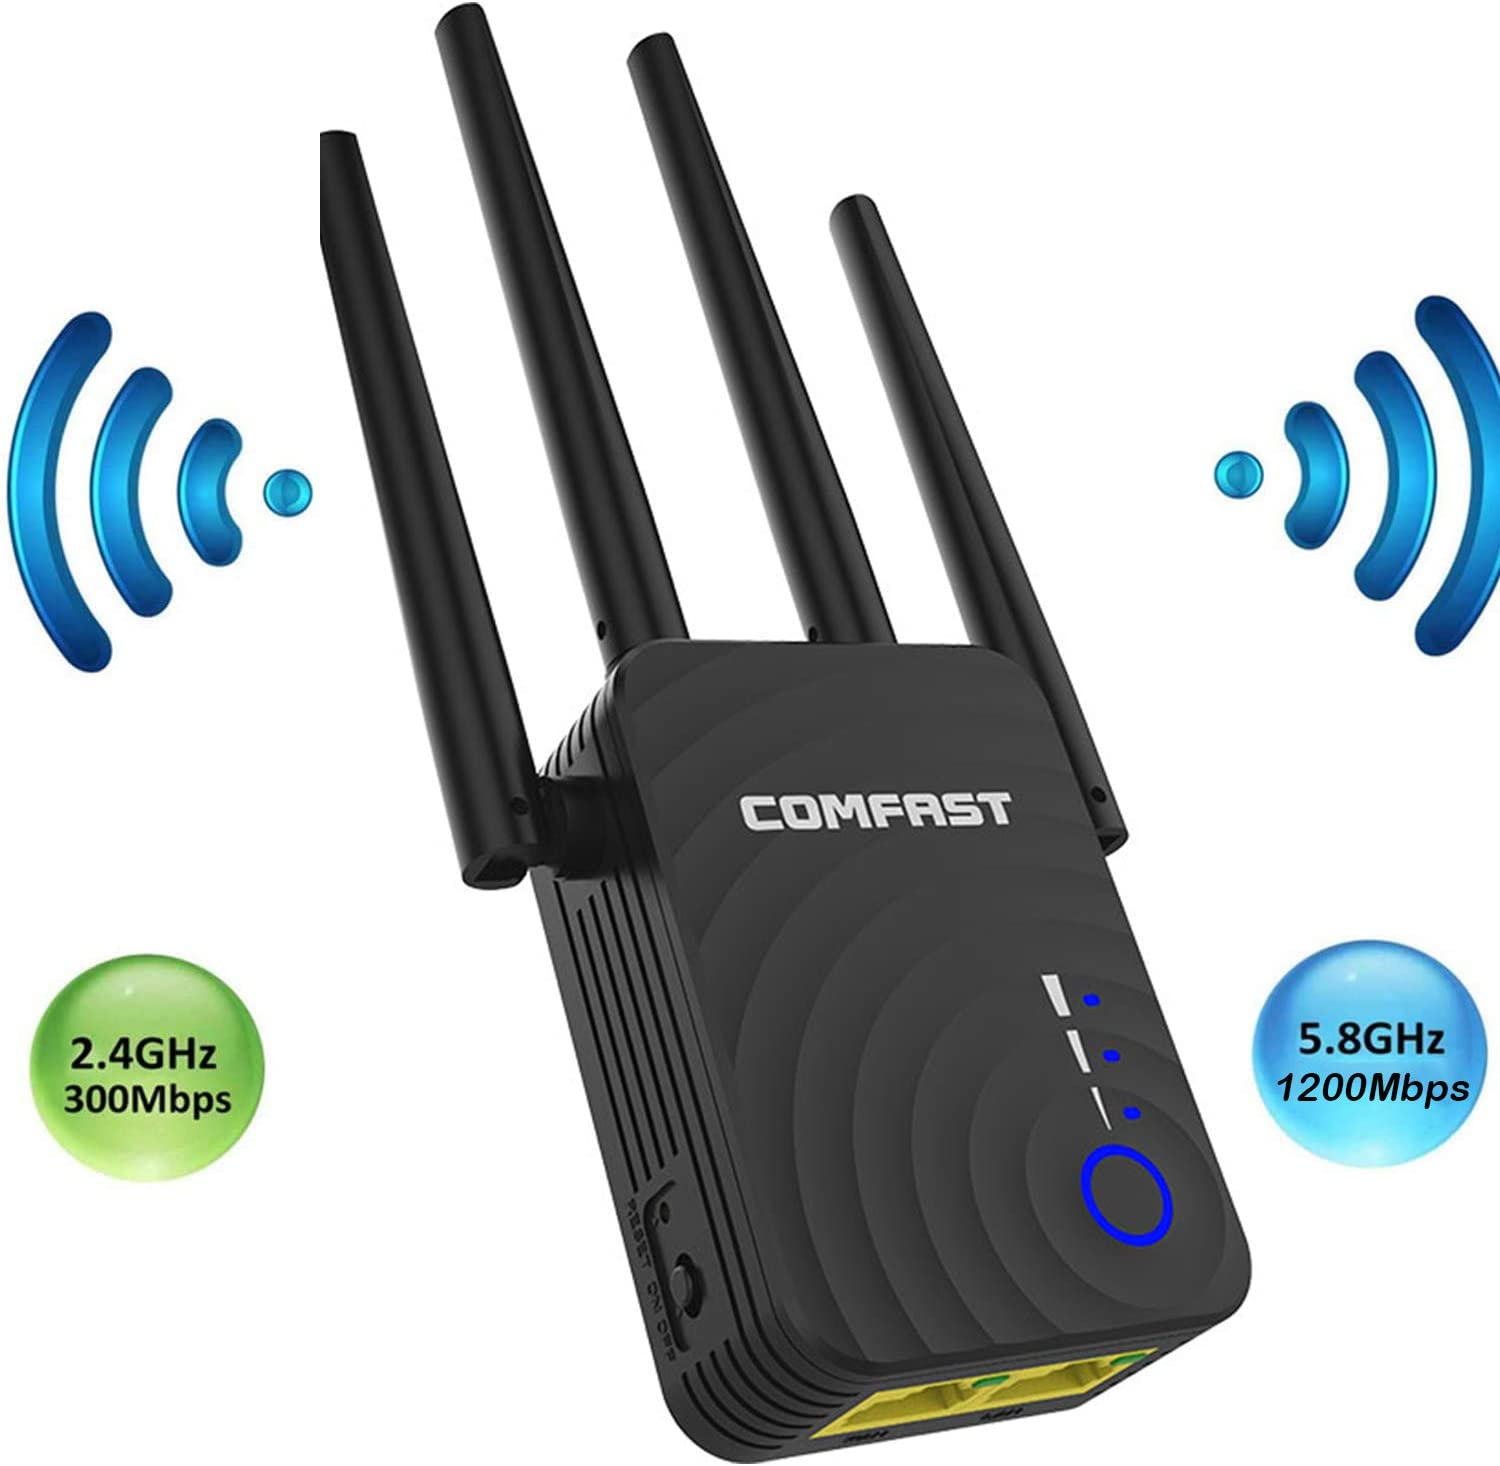 WiFi Range Extender 1200Mbps WiFi Booster AC1200 for The Hourse, Repeater 2.4 & 5GHz Dual Band WPS Wireless Signal Strong Penetrability, Wide Range of Signals(2500FT), Enjoy Gaming